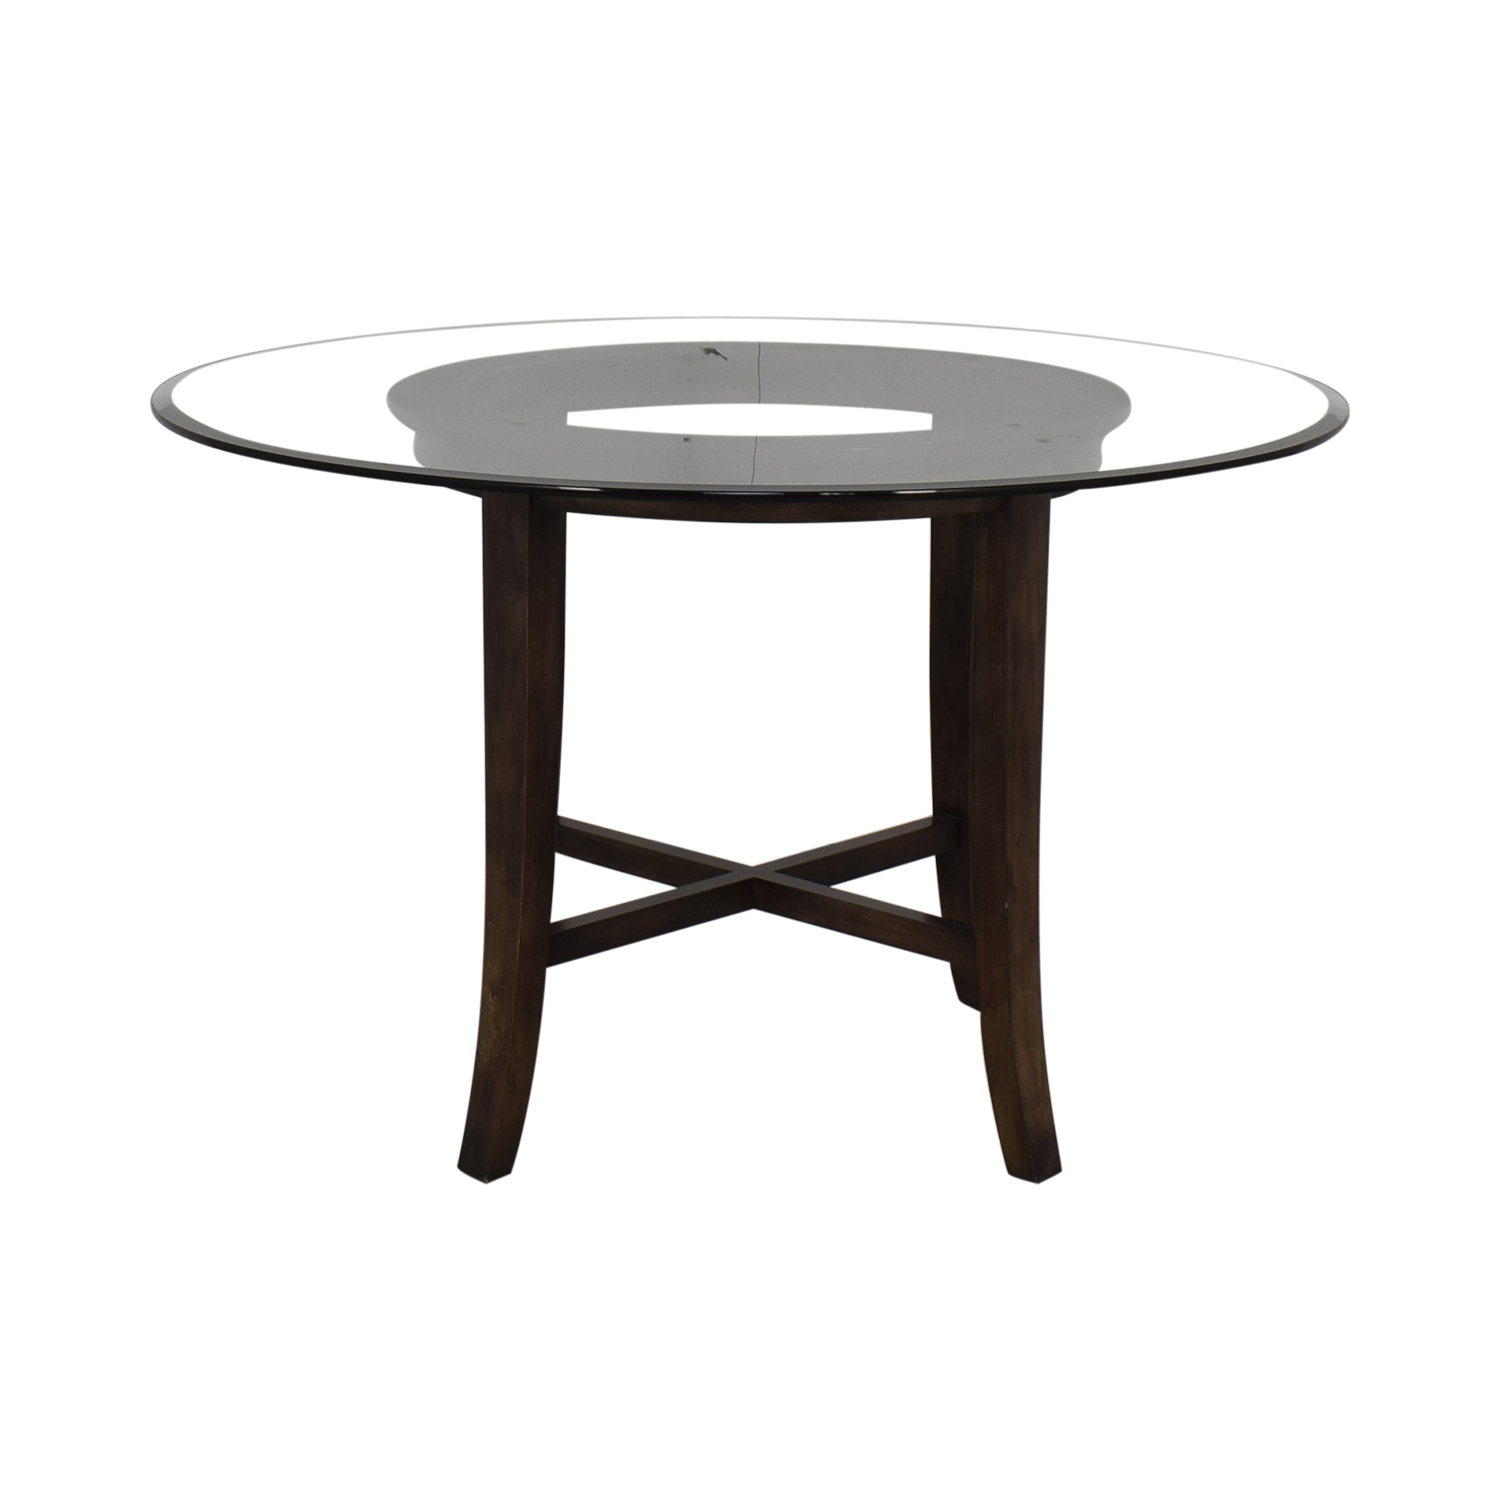 Crate & Barrel Crate & Barrel Halo Round Dining Table Dinner Tables